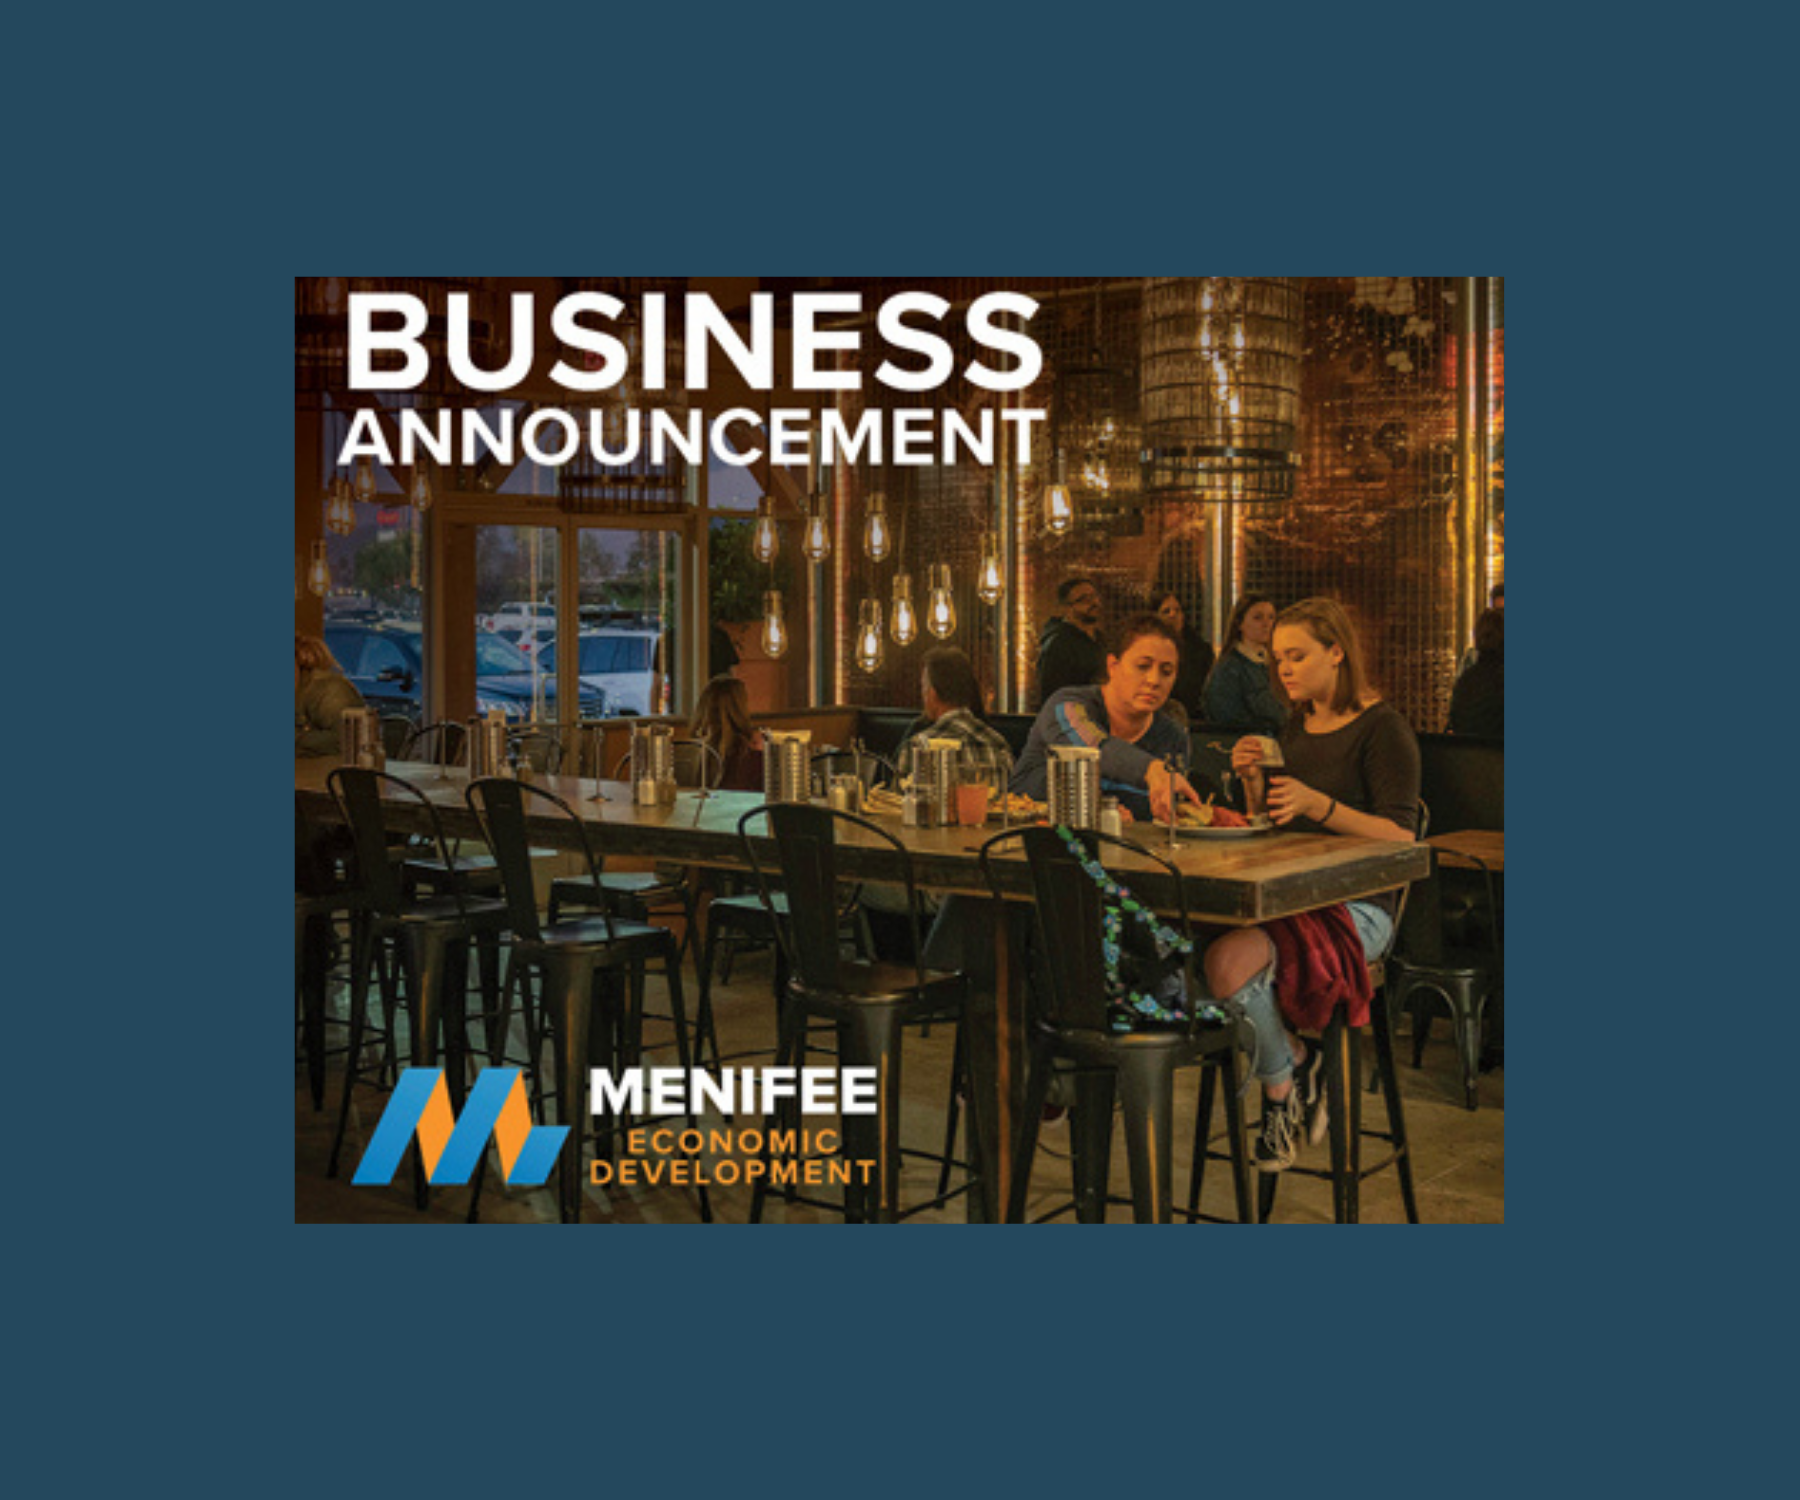 Business Grant Announcement